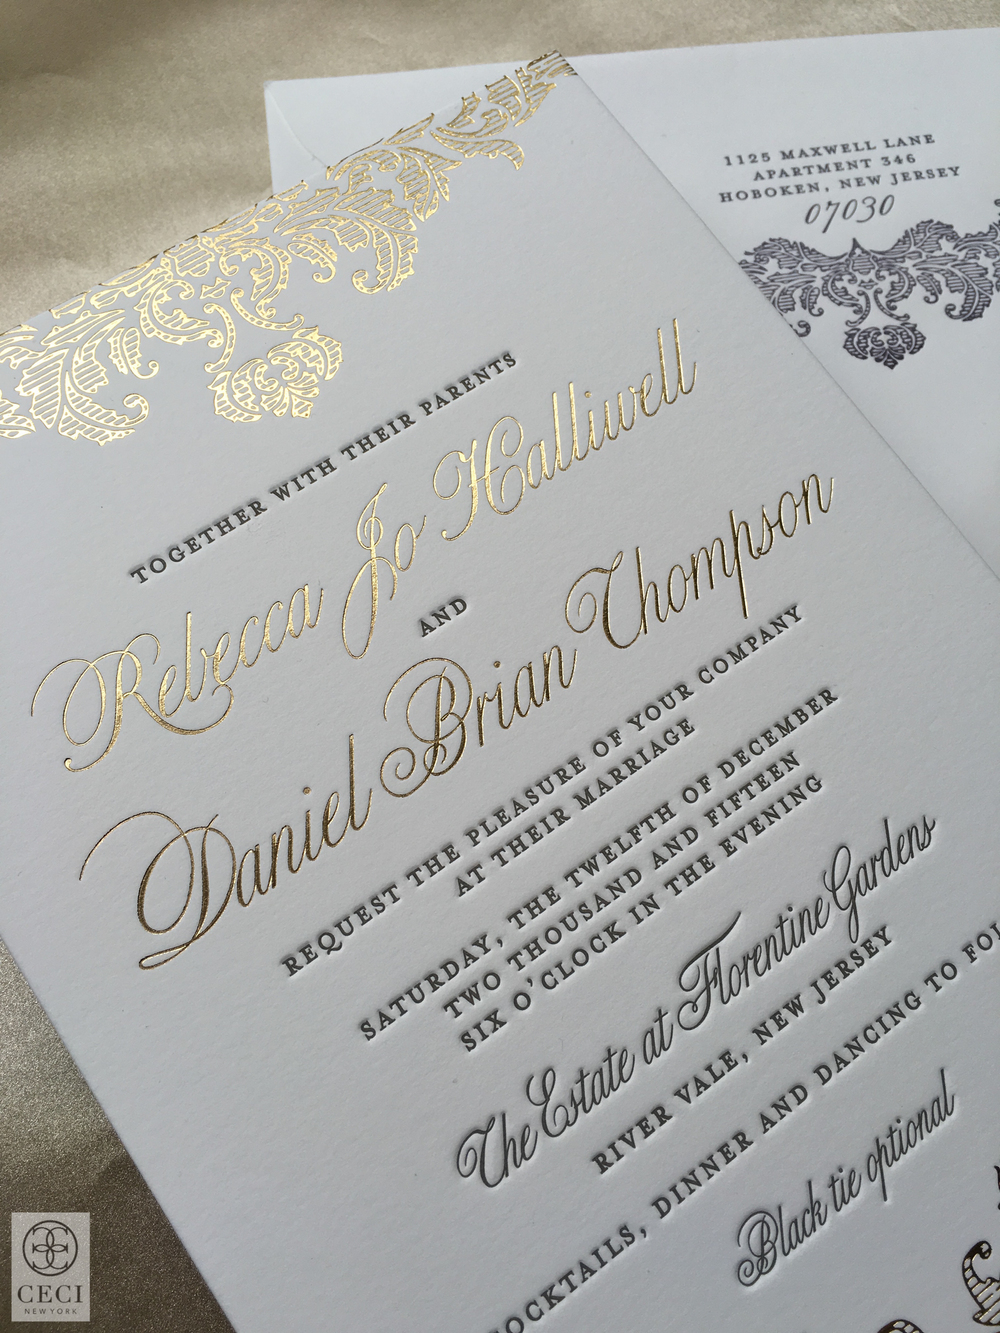 Ceci_New_York_New_Jersey_Invitations_Wedding_New_York_Elegance_Silver_Blue_Letterpress_Deco_Classic_Foil_Stamping_Custom_Couture_Personalized-20.jpg